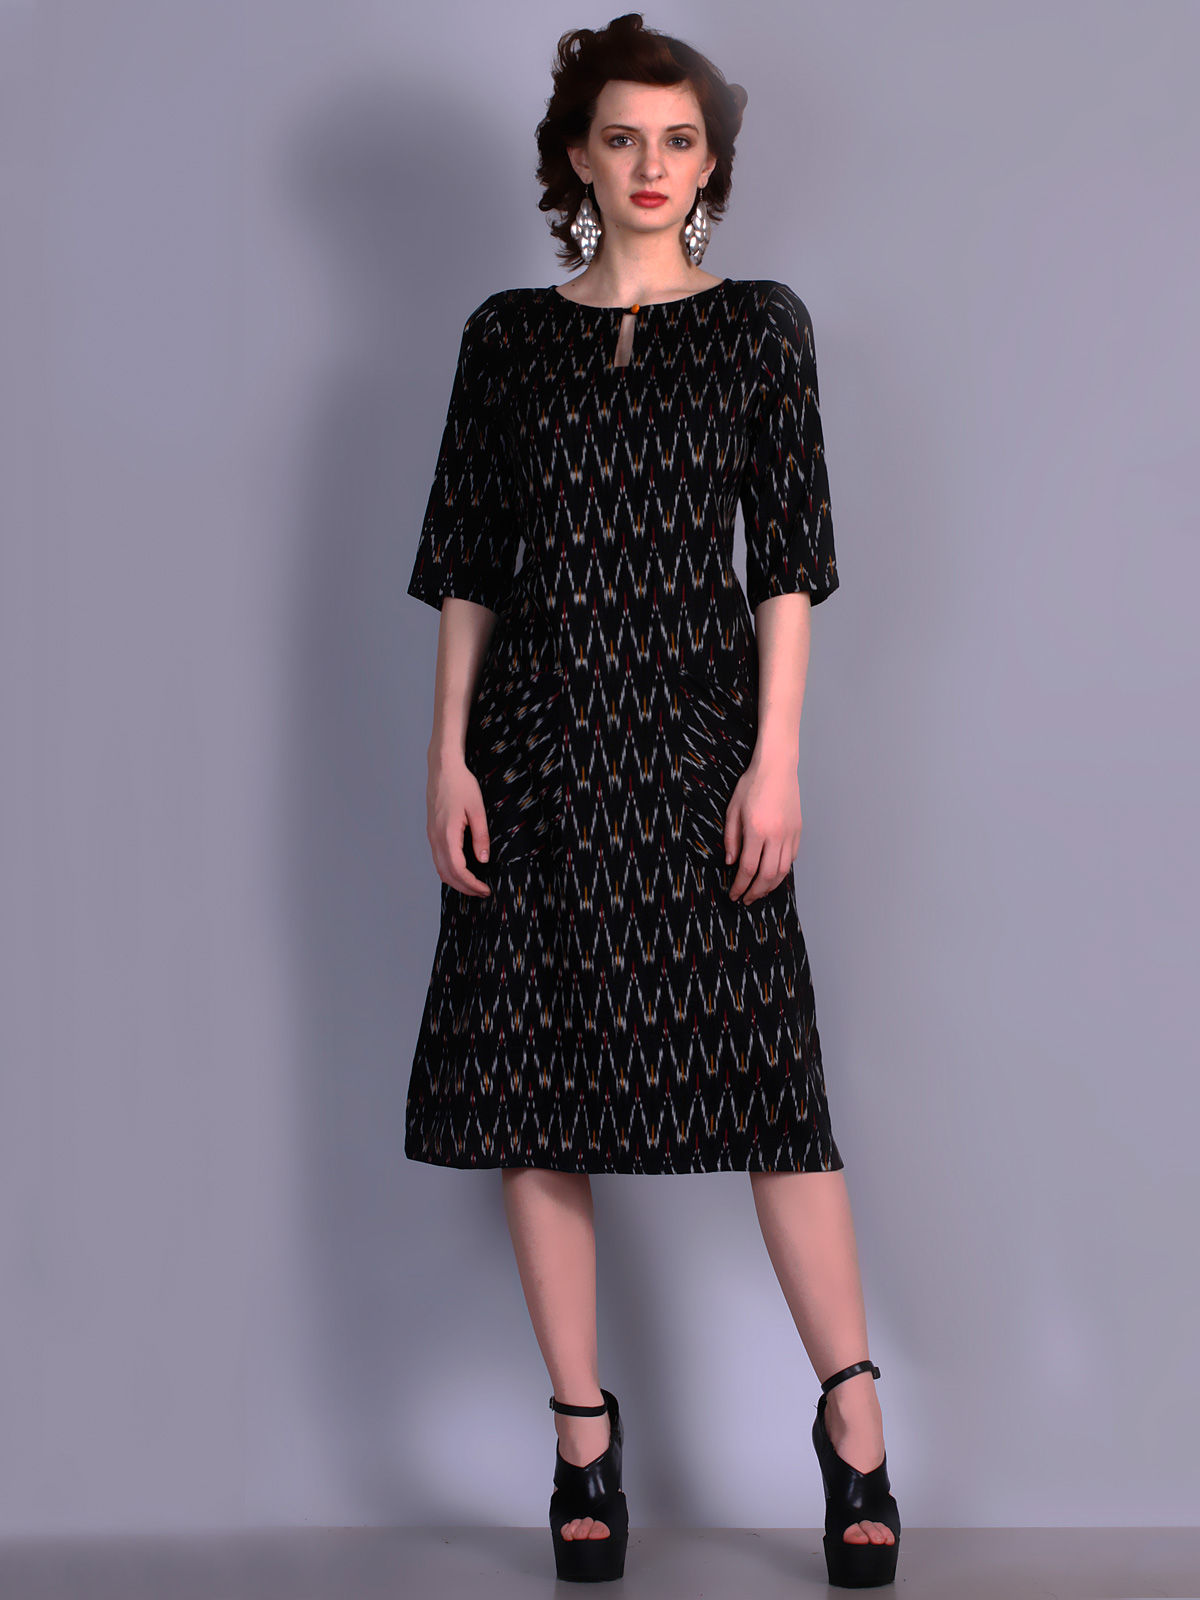 Black color Ikat cotton dress with waves pattern